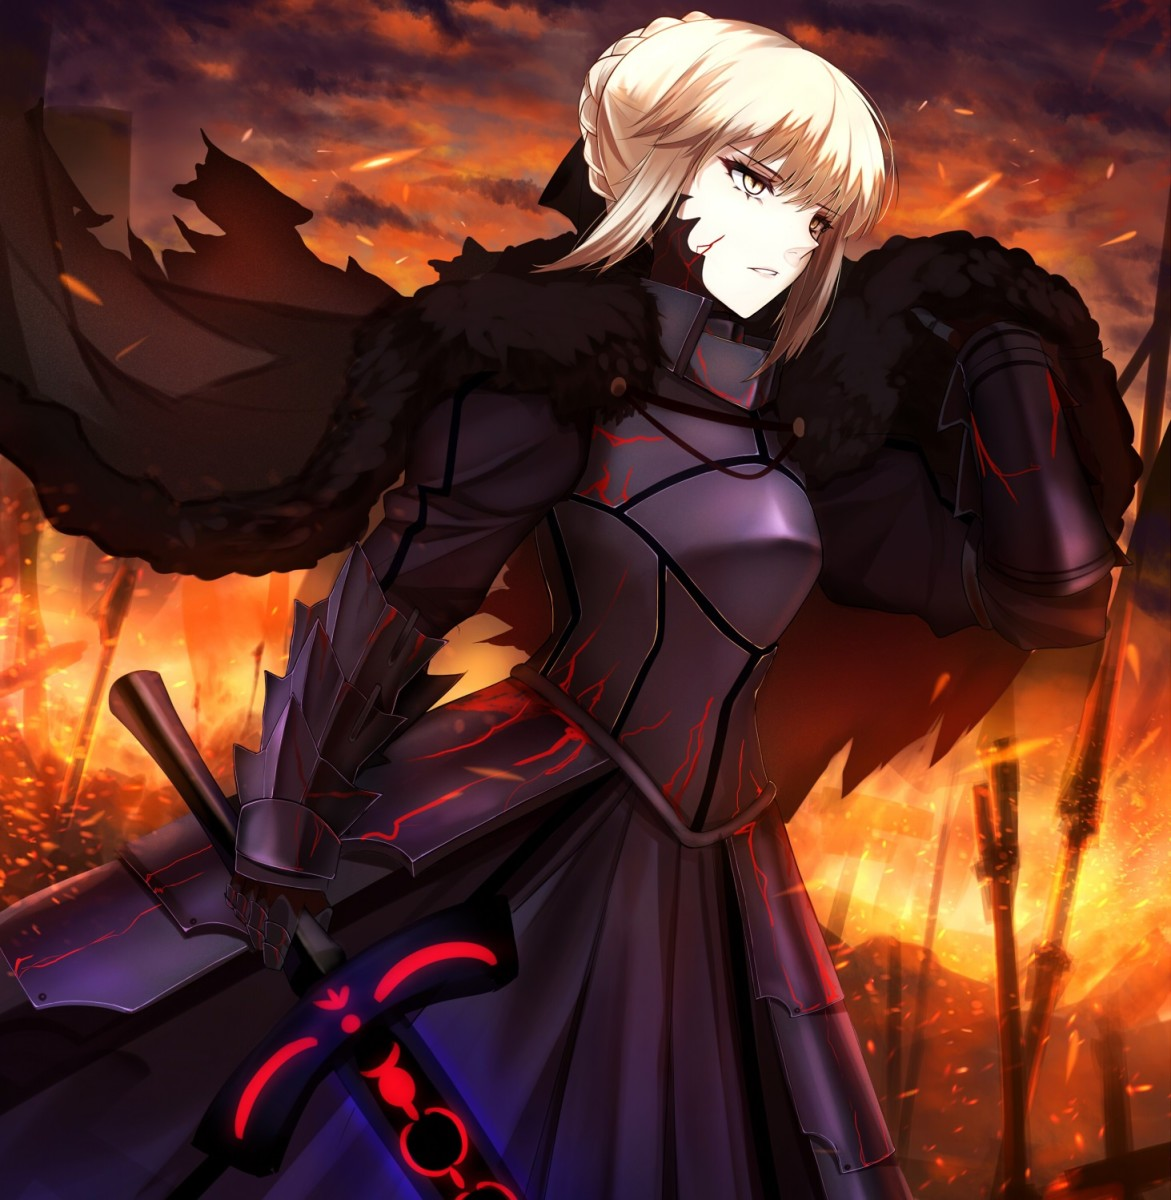 Saber Alter in Heaven's Feel